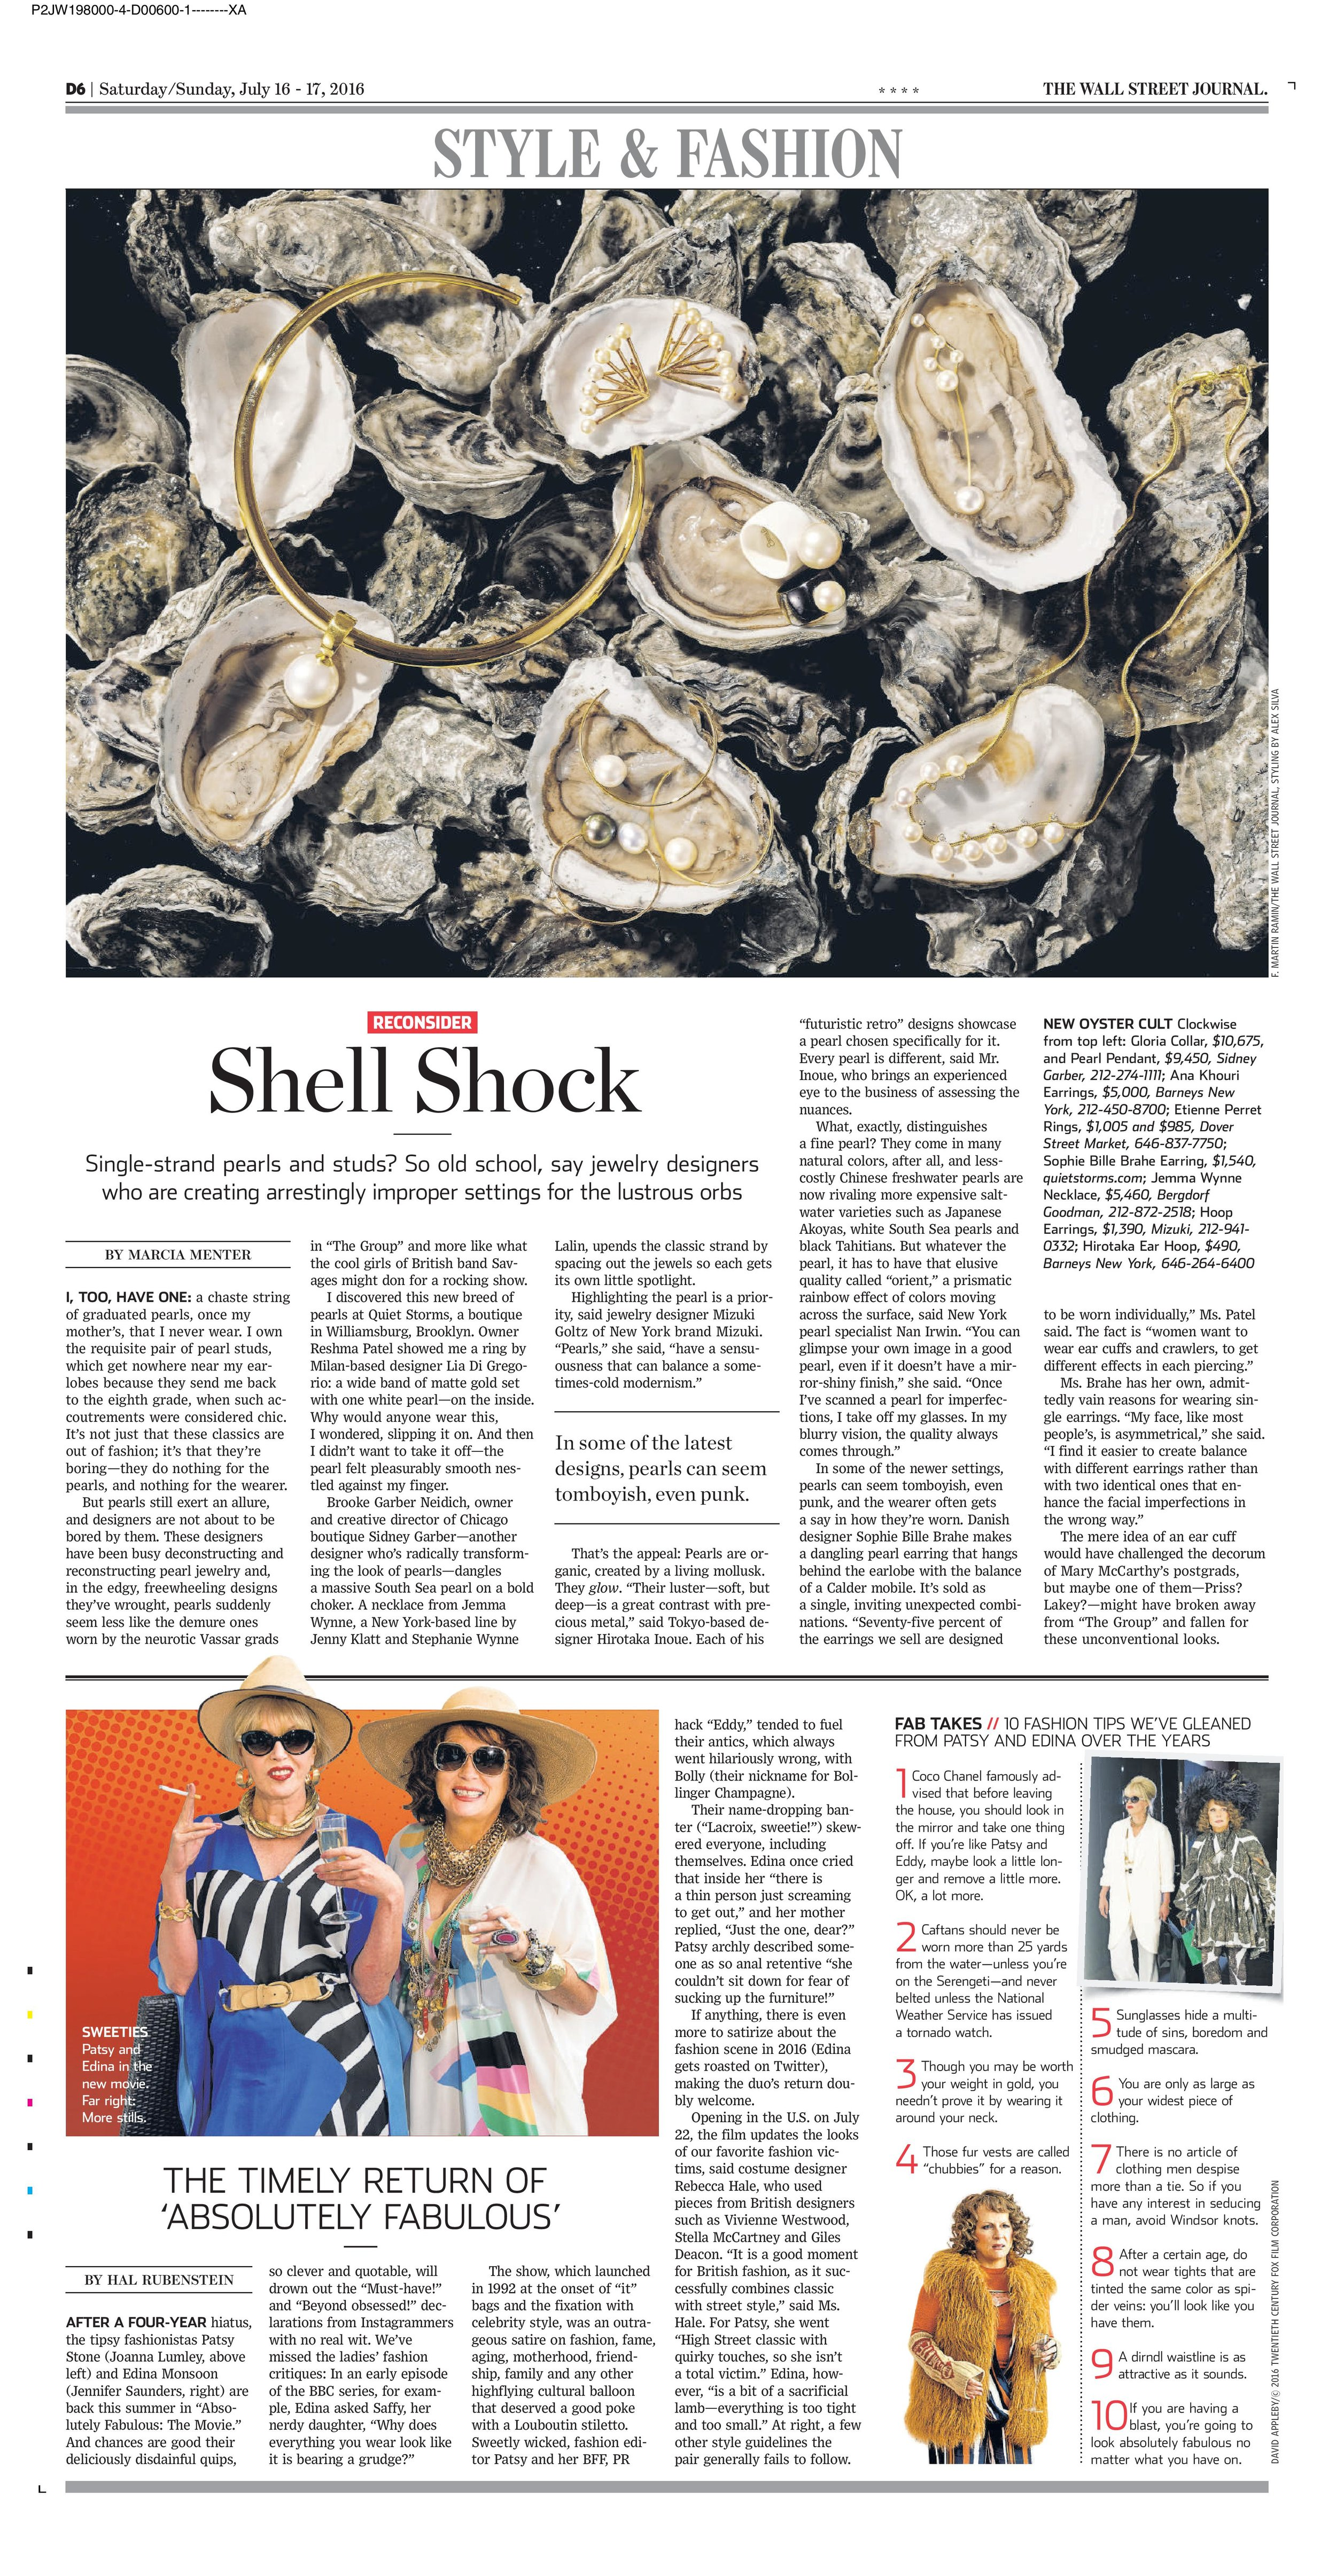 WSJ_Off_Duty_7.16.16_D6.compressed-page-001.jpg